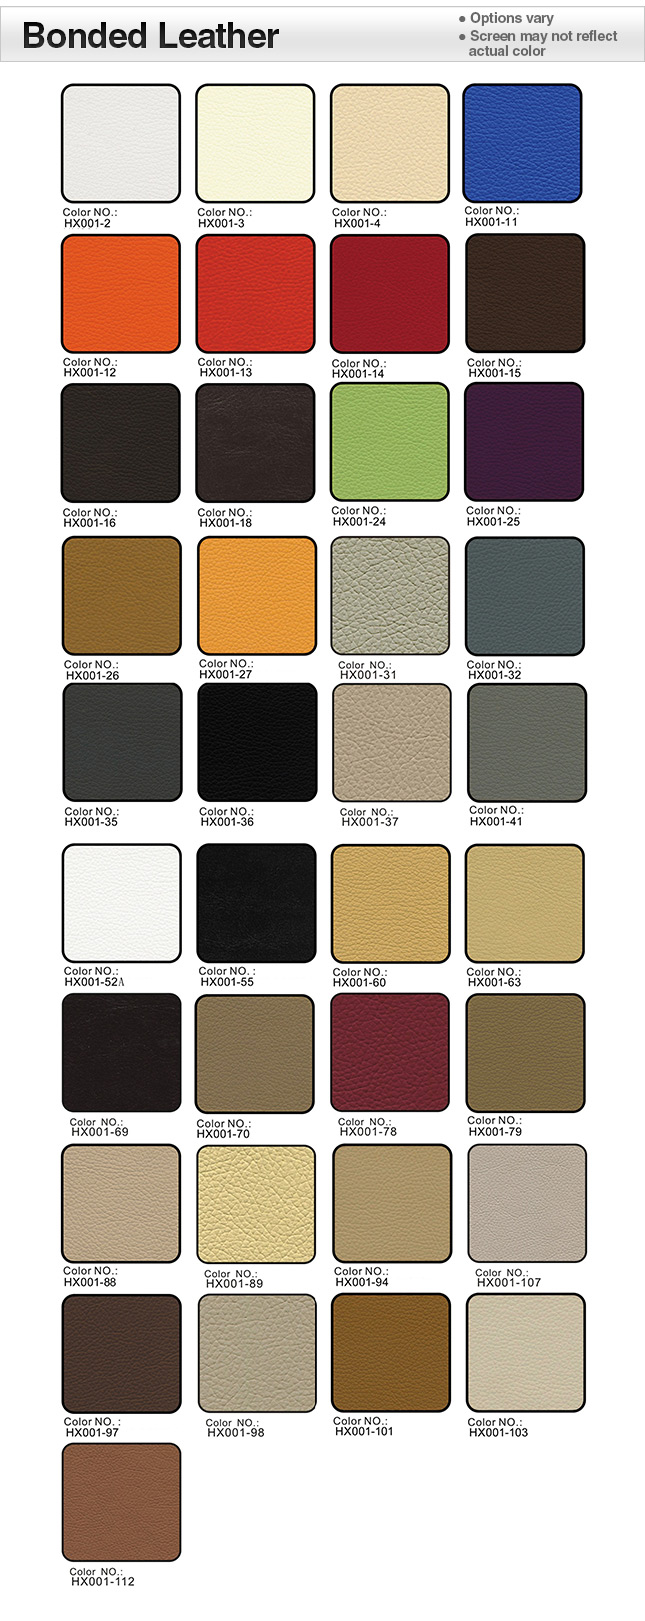 Bonded Leather Swatches